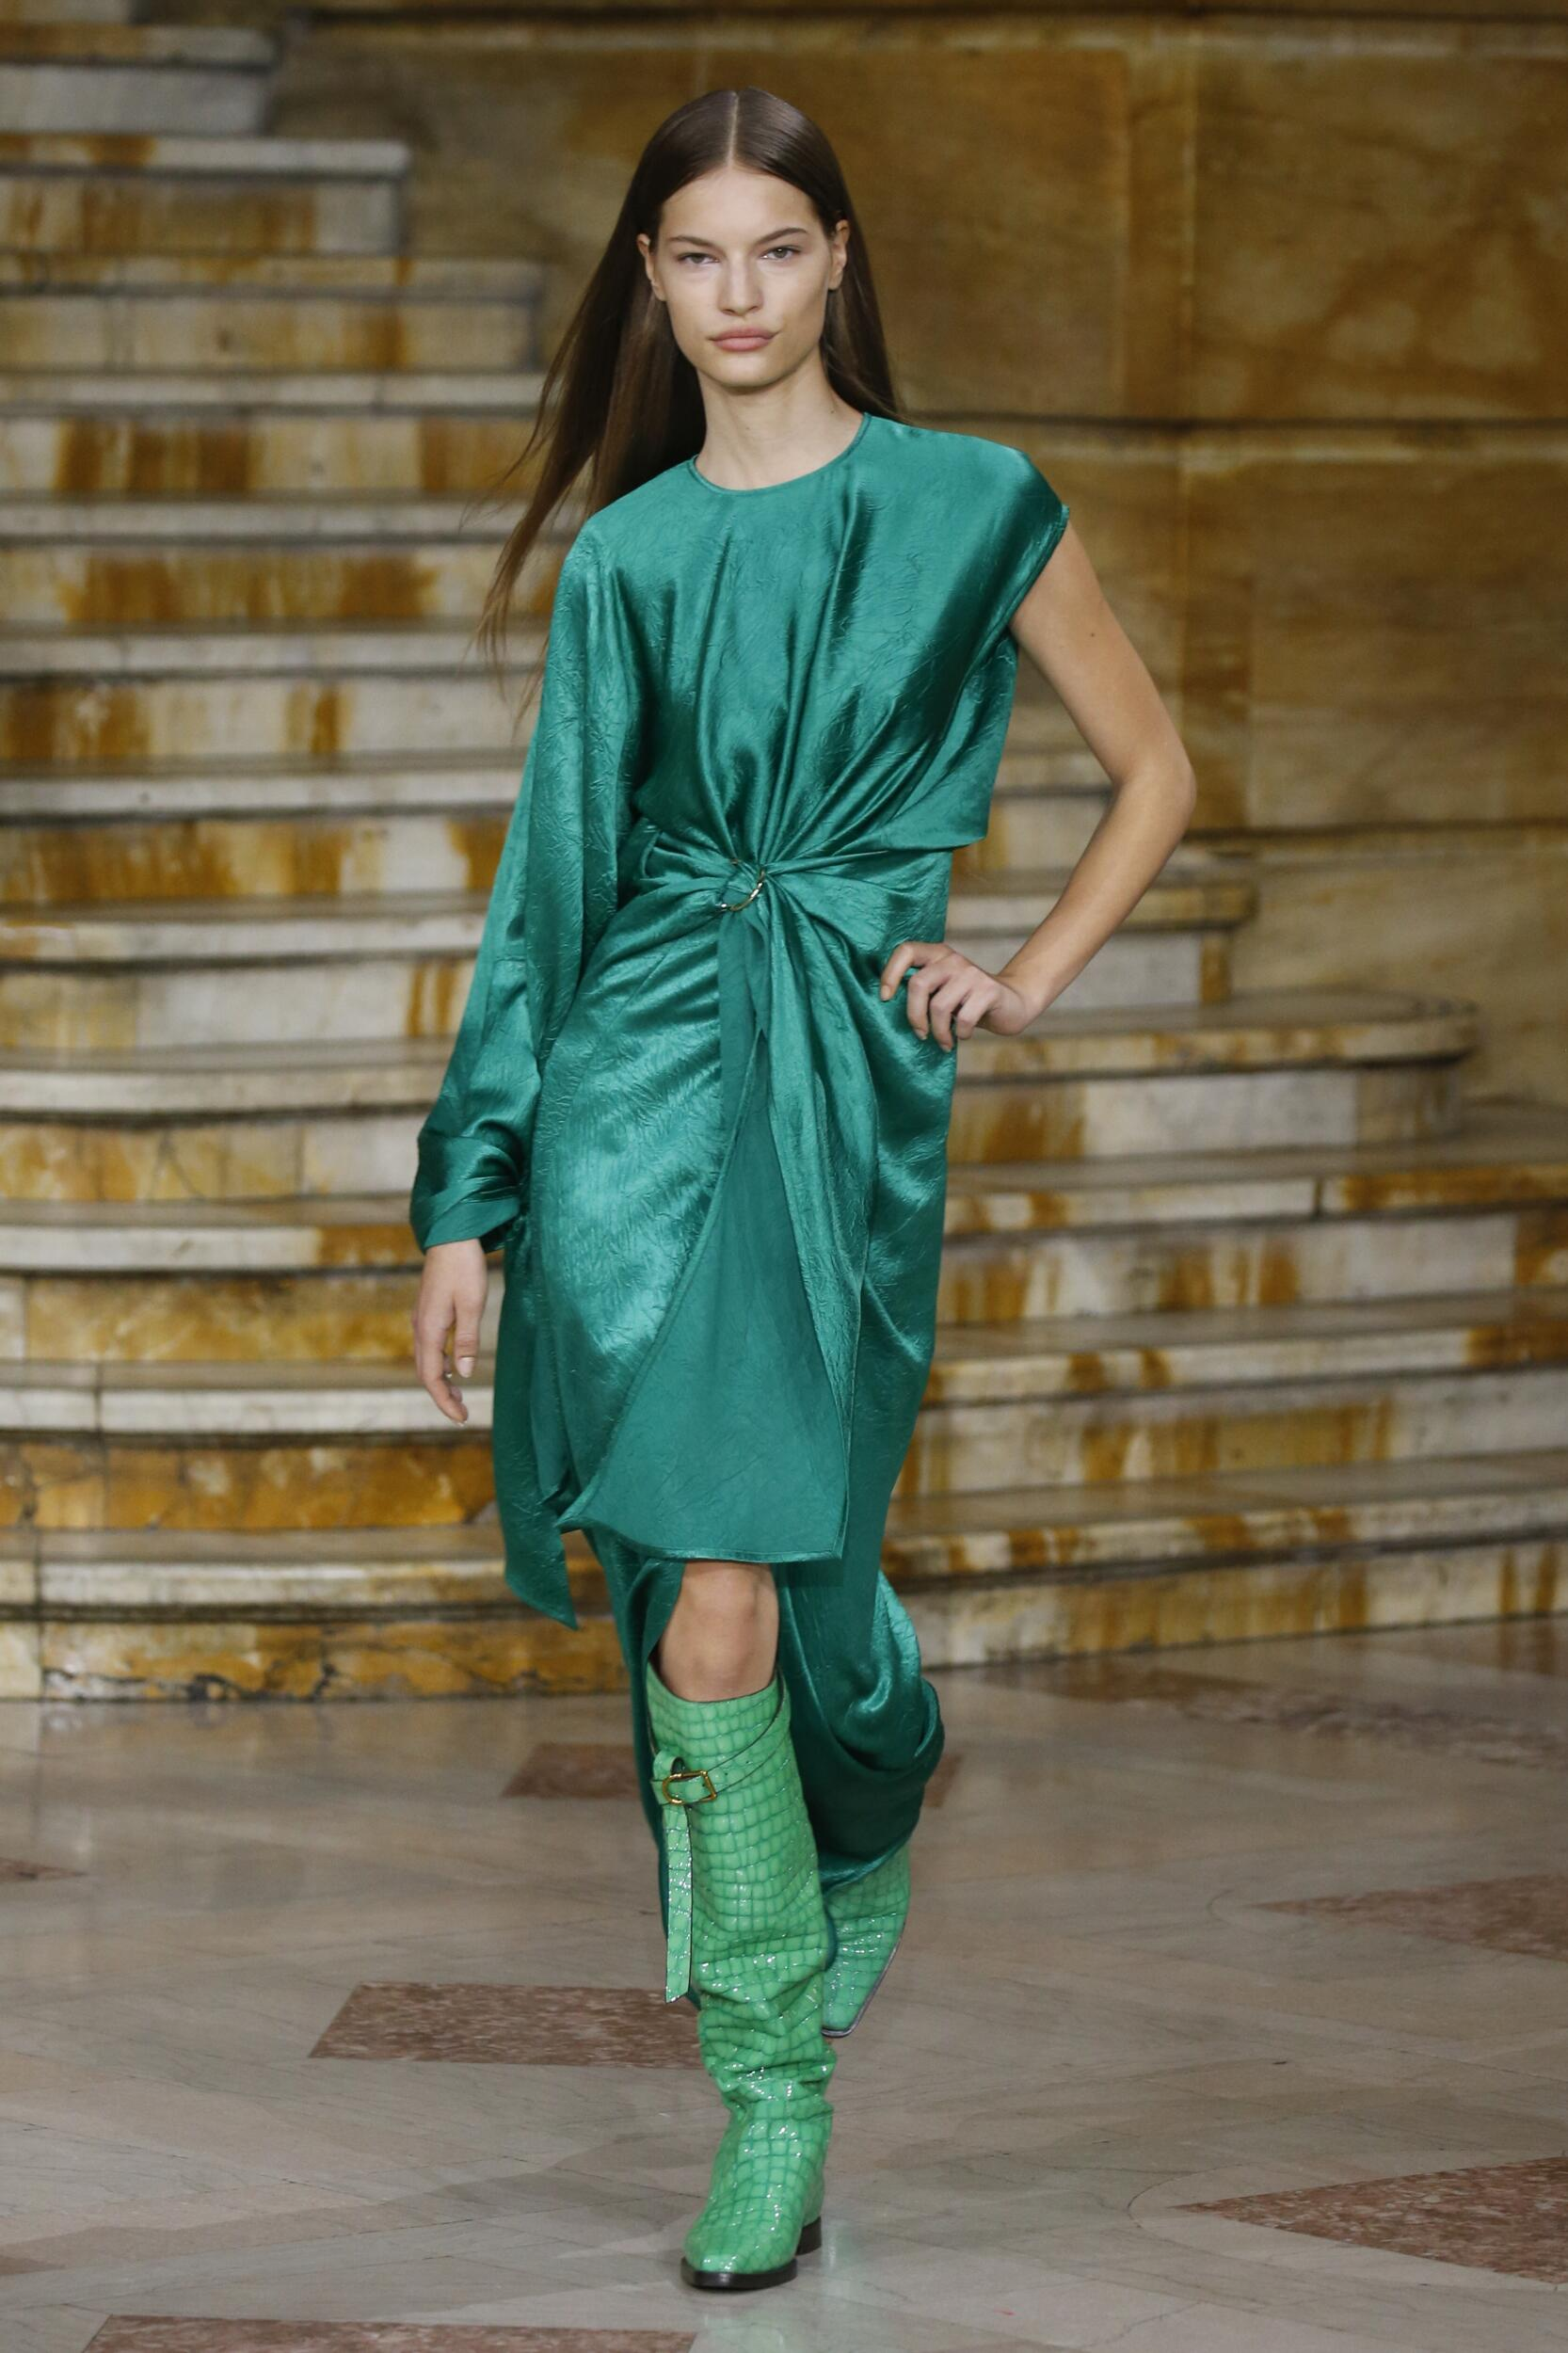 Catwalk Sies Marjan Woman Fashion Show Summer 2020